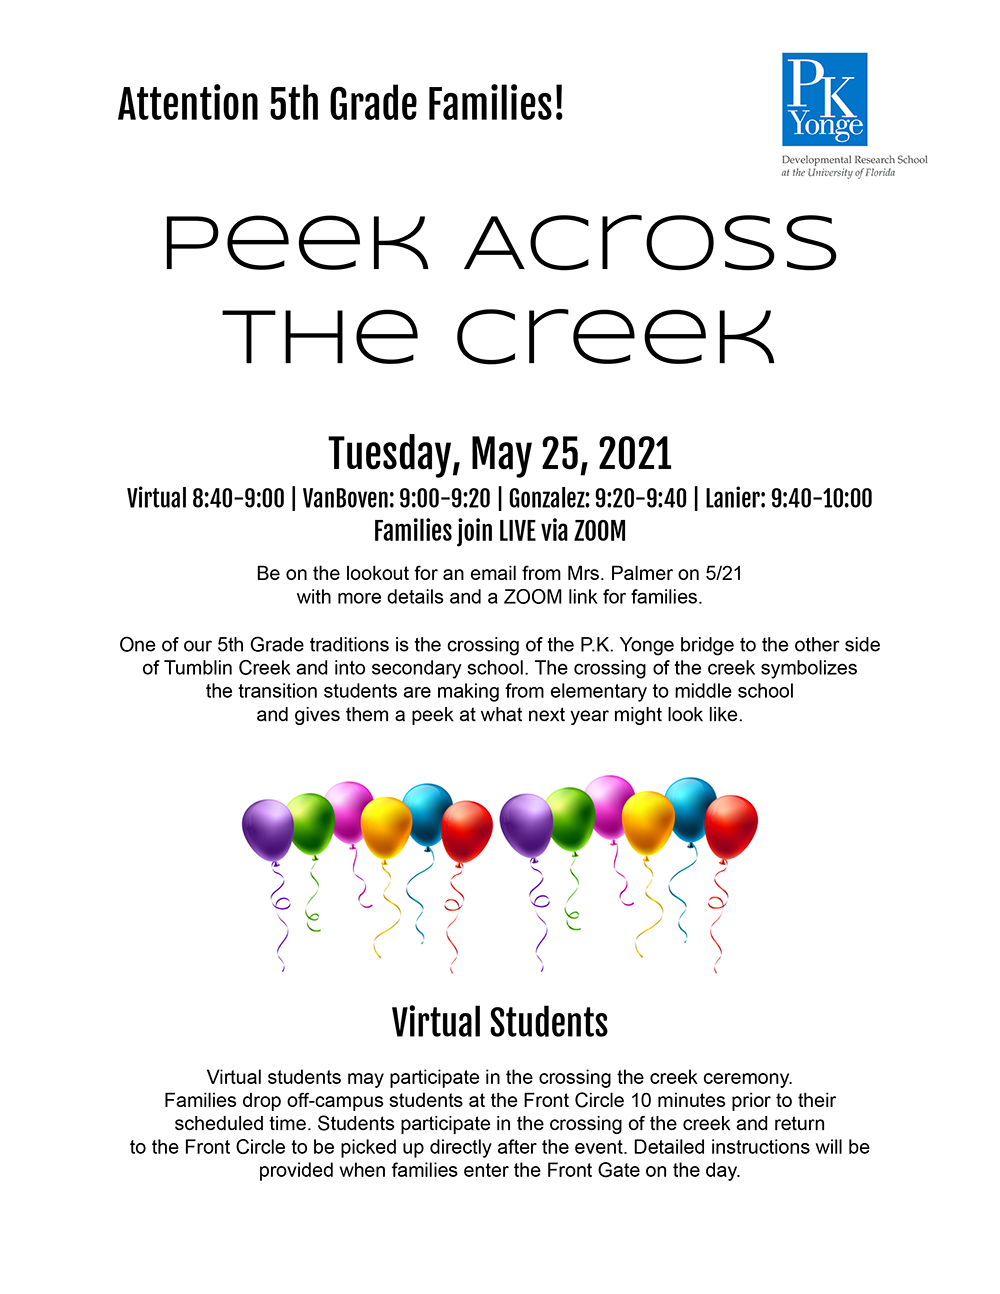 Peek Across the CreekTuesday, May 25, 2021Virtual 8:40-9:00 | VanBoven: 9:00-9:20 | Gonzalez: 9:20-9:40 | Lanier: 9:40-10:00Families join LIVE via ZOOMBe on the lookout for an email from Mrs. Palmer on 5/21 with more details and a ZOOM link for families.One of our 5th Grade traditions is the crossing of the P.K. Yonge bridge to the other side of Tumblin Creek and into secondary school. The crossing of the creek symbolizes the transition students are making from elementary to middle school and gives them a peek at what next year might look like.Virtual StudentsVirtual students may participate in the crossing the creek ceremony.Families drop off-campus students at the Front Circle 10 minutes prior to their scheduled time. Students participate in the crossing of the creek and return to the Front Circle to be picked up directly after the event. Detailed instructions will be provided when families enter the Front Gate on the day.